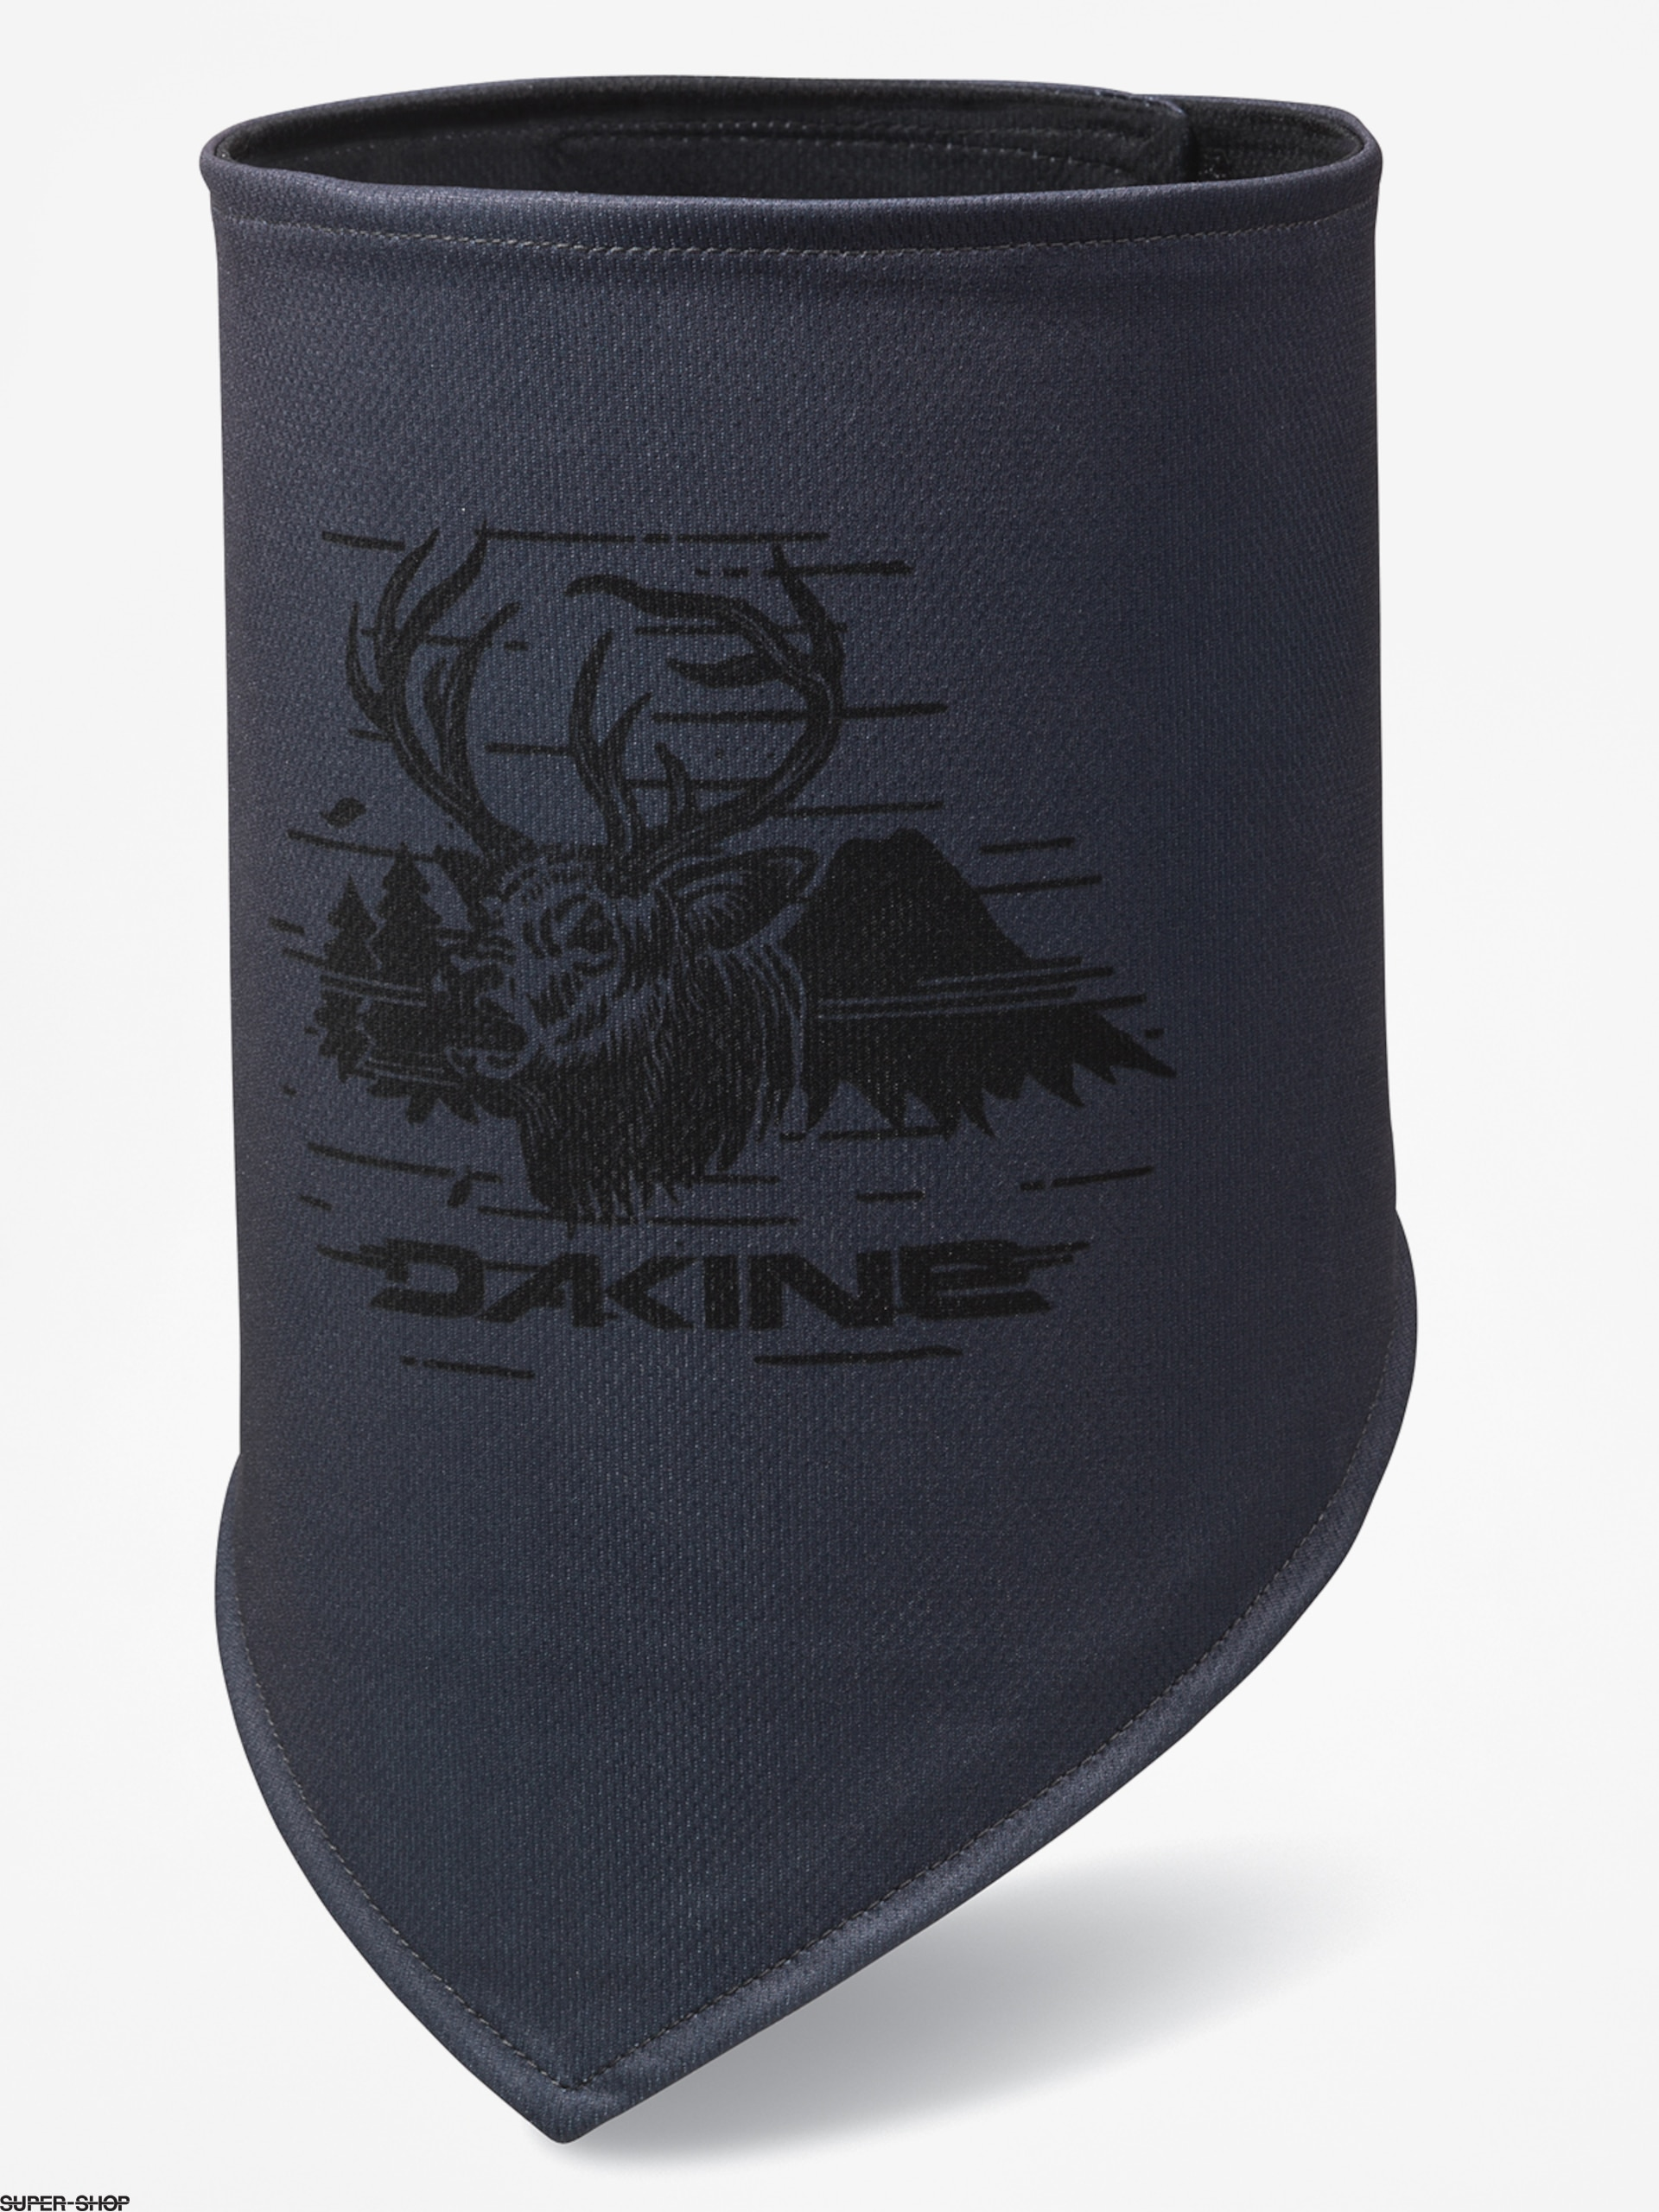 Dakine Neckwarmer Hoodlum Face Mask (charcoal)